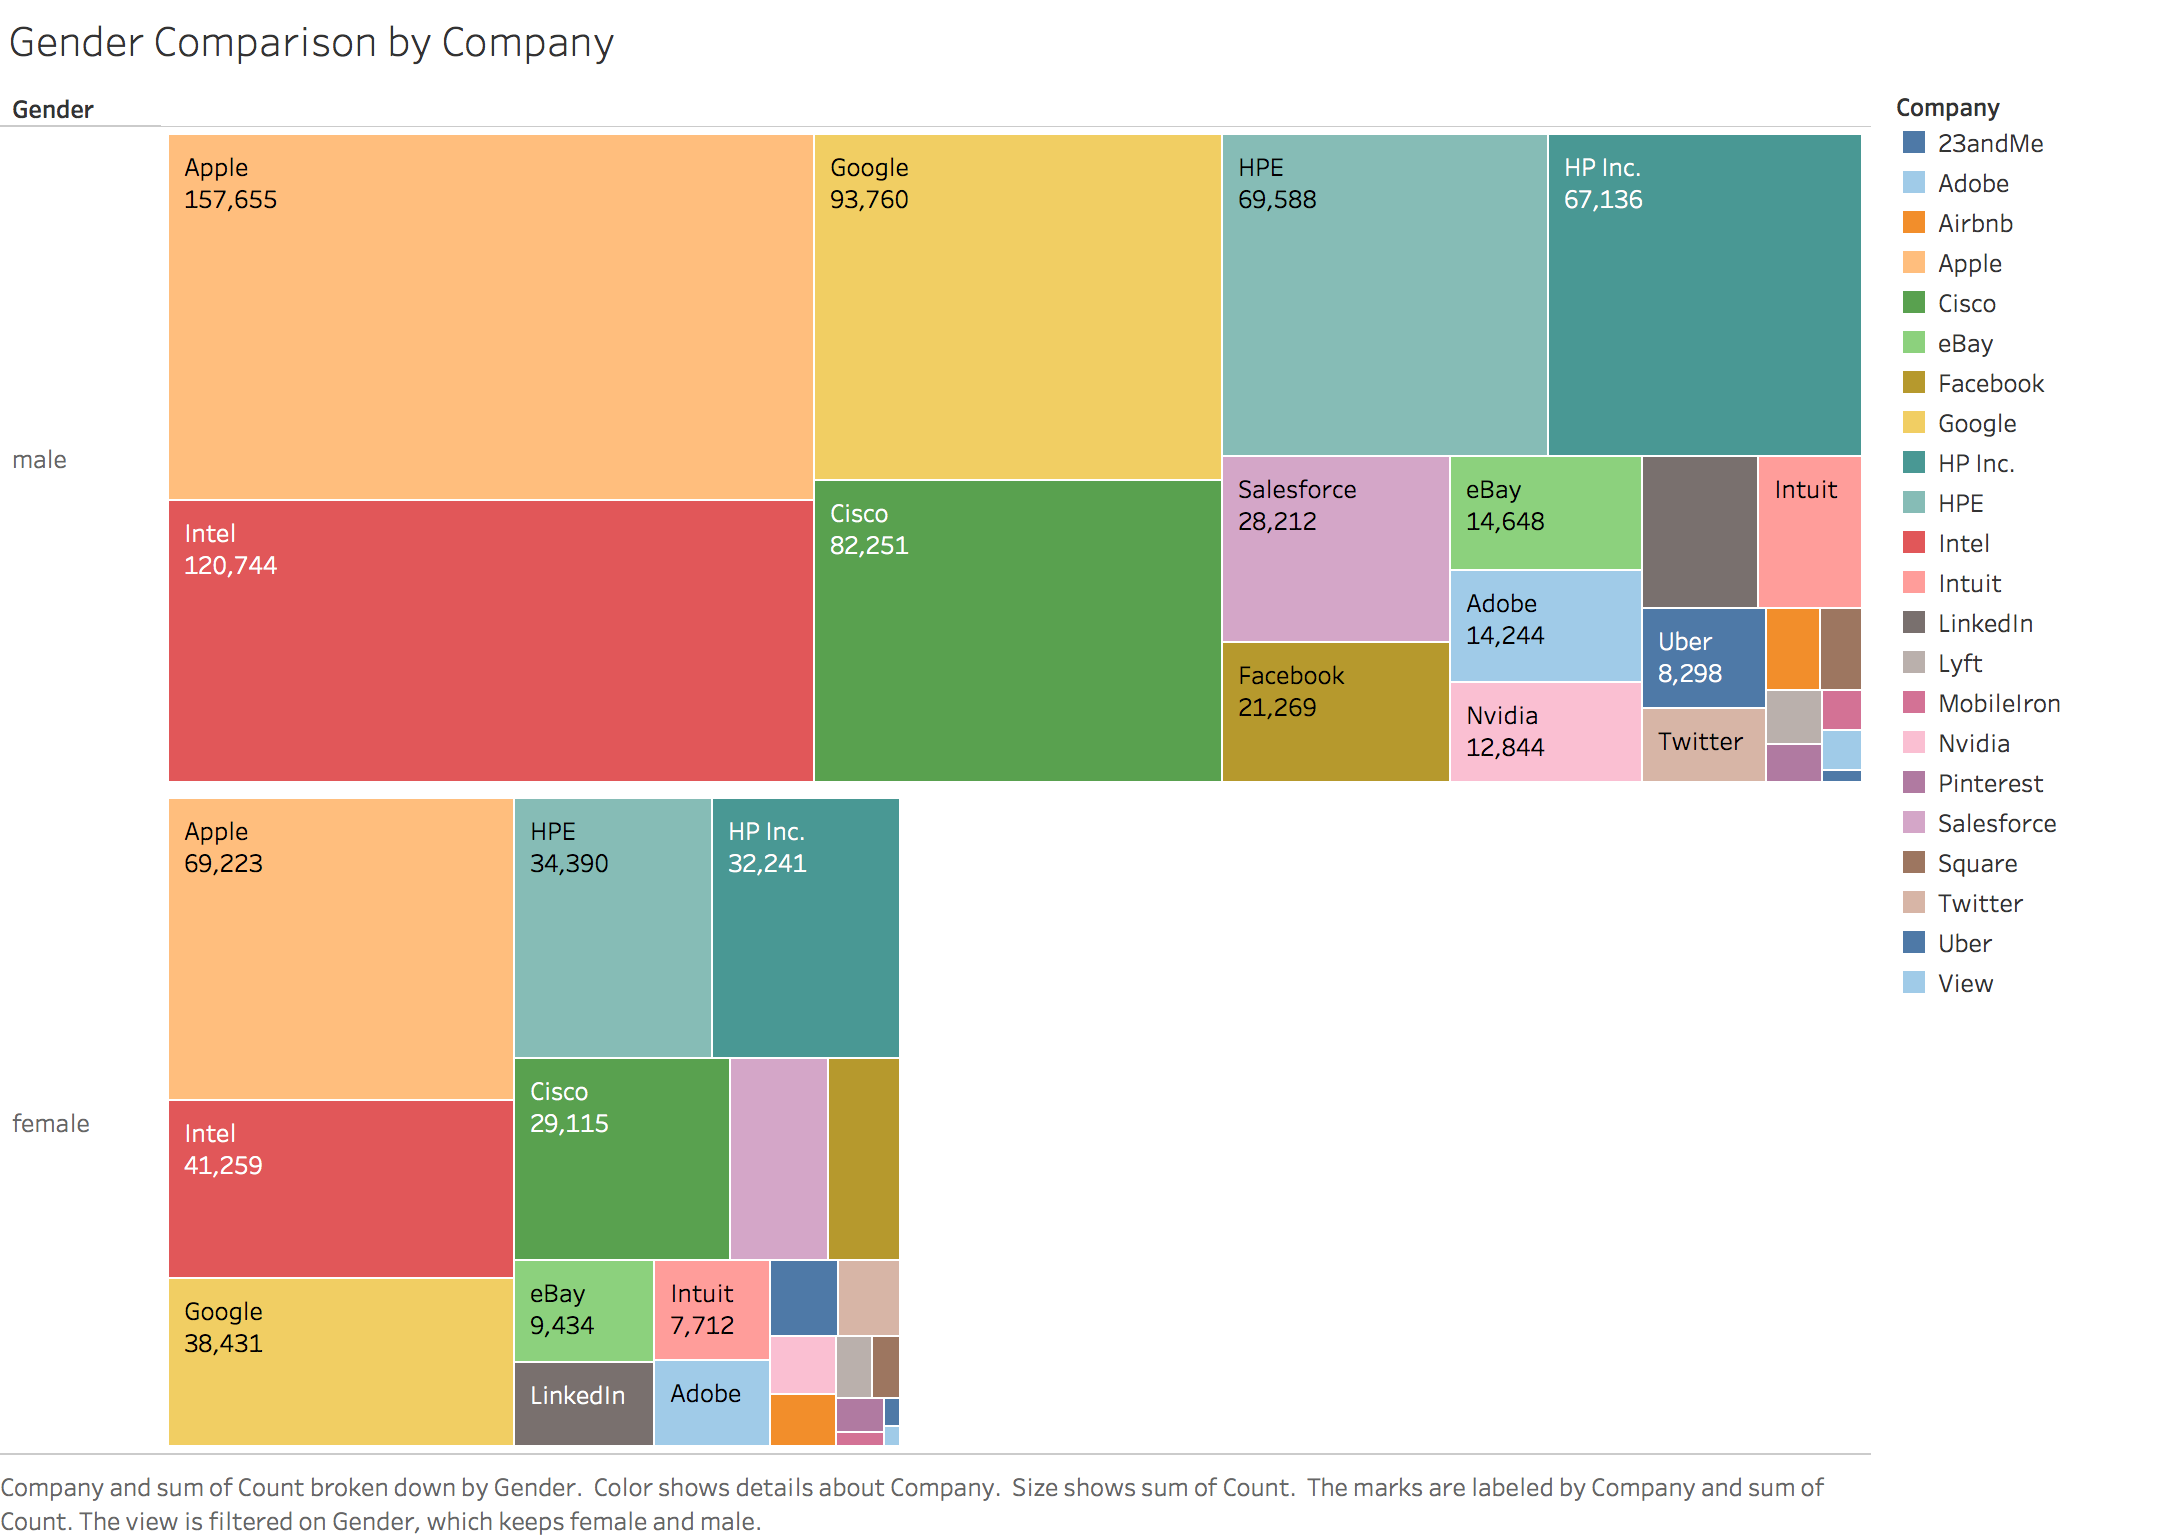 Overall Gender Comparison by Company